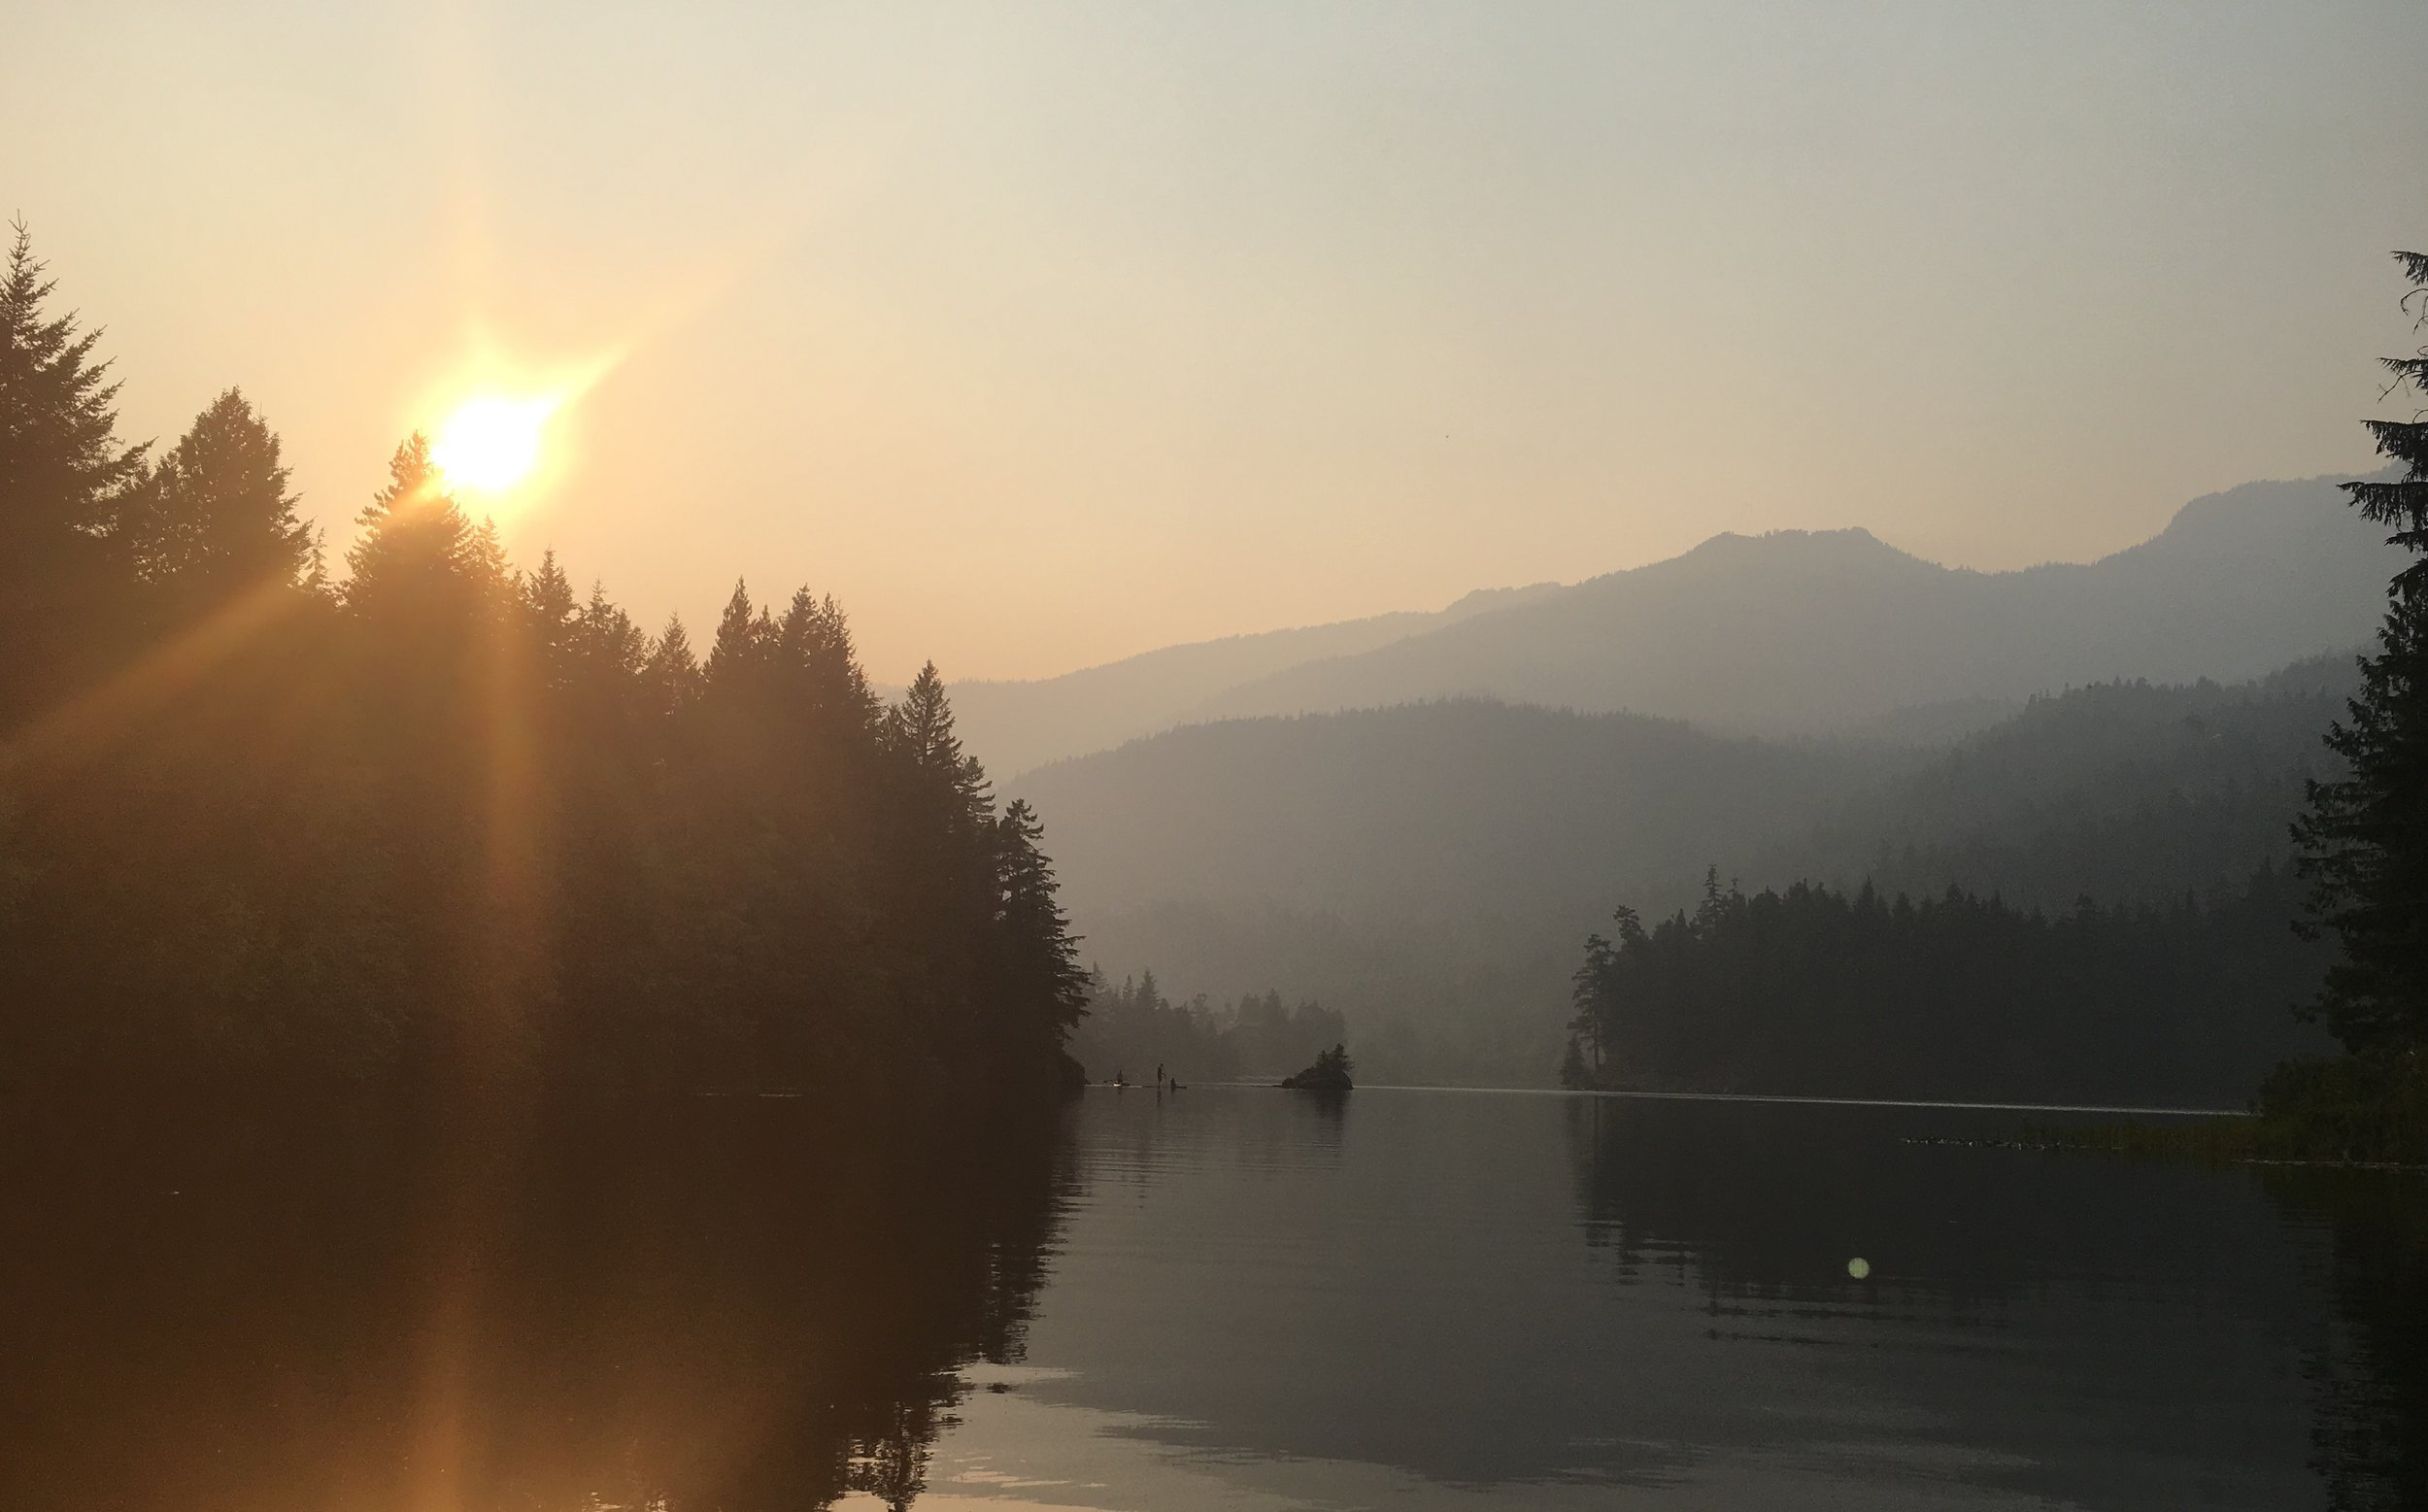 View from Alpha Lake, one of Whistler's many tranquil lakes. Photo Credit: Chris Brook